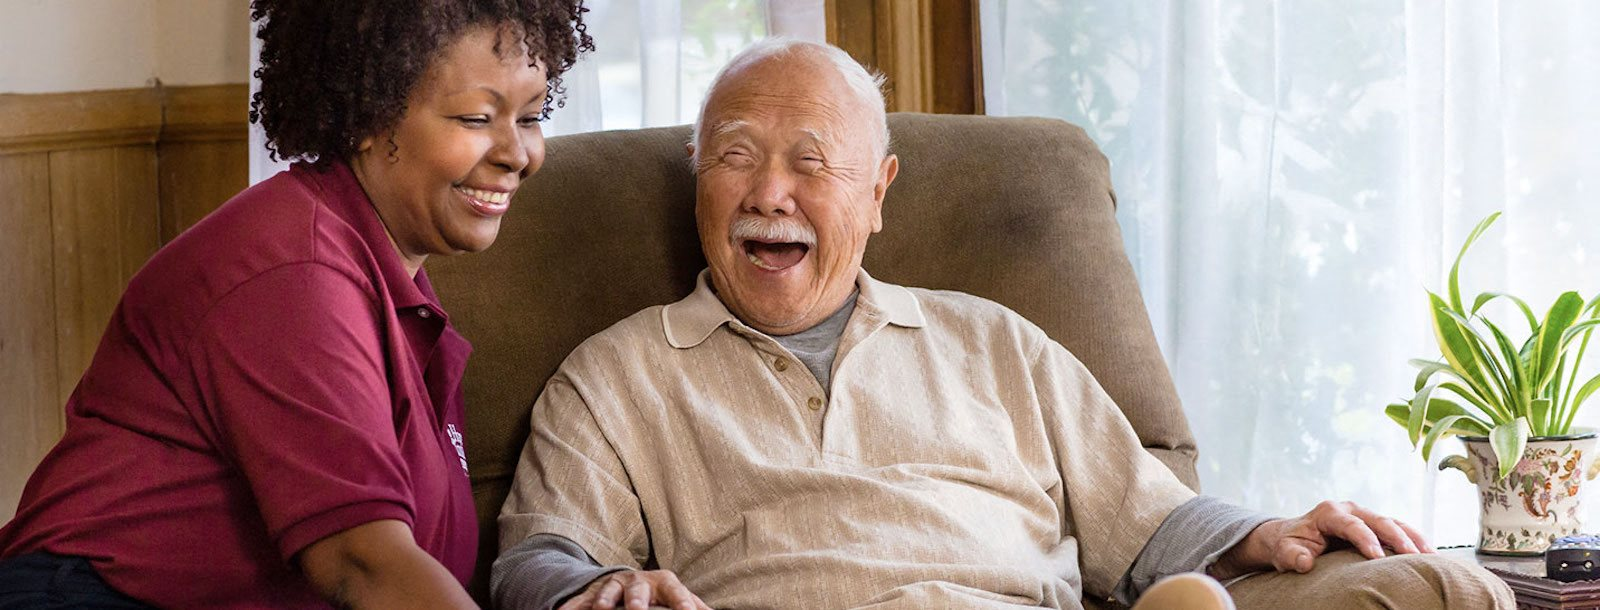 resident and staff member sharing a laugh together